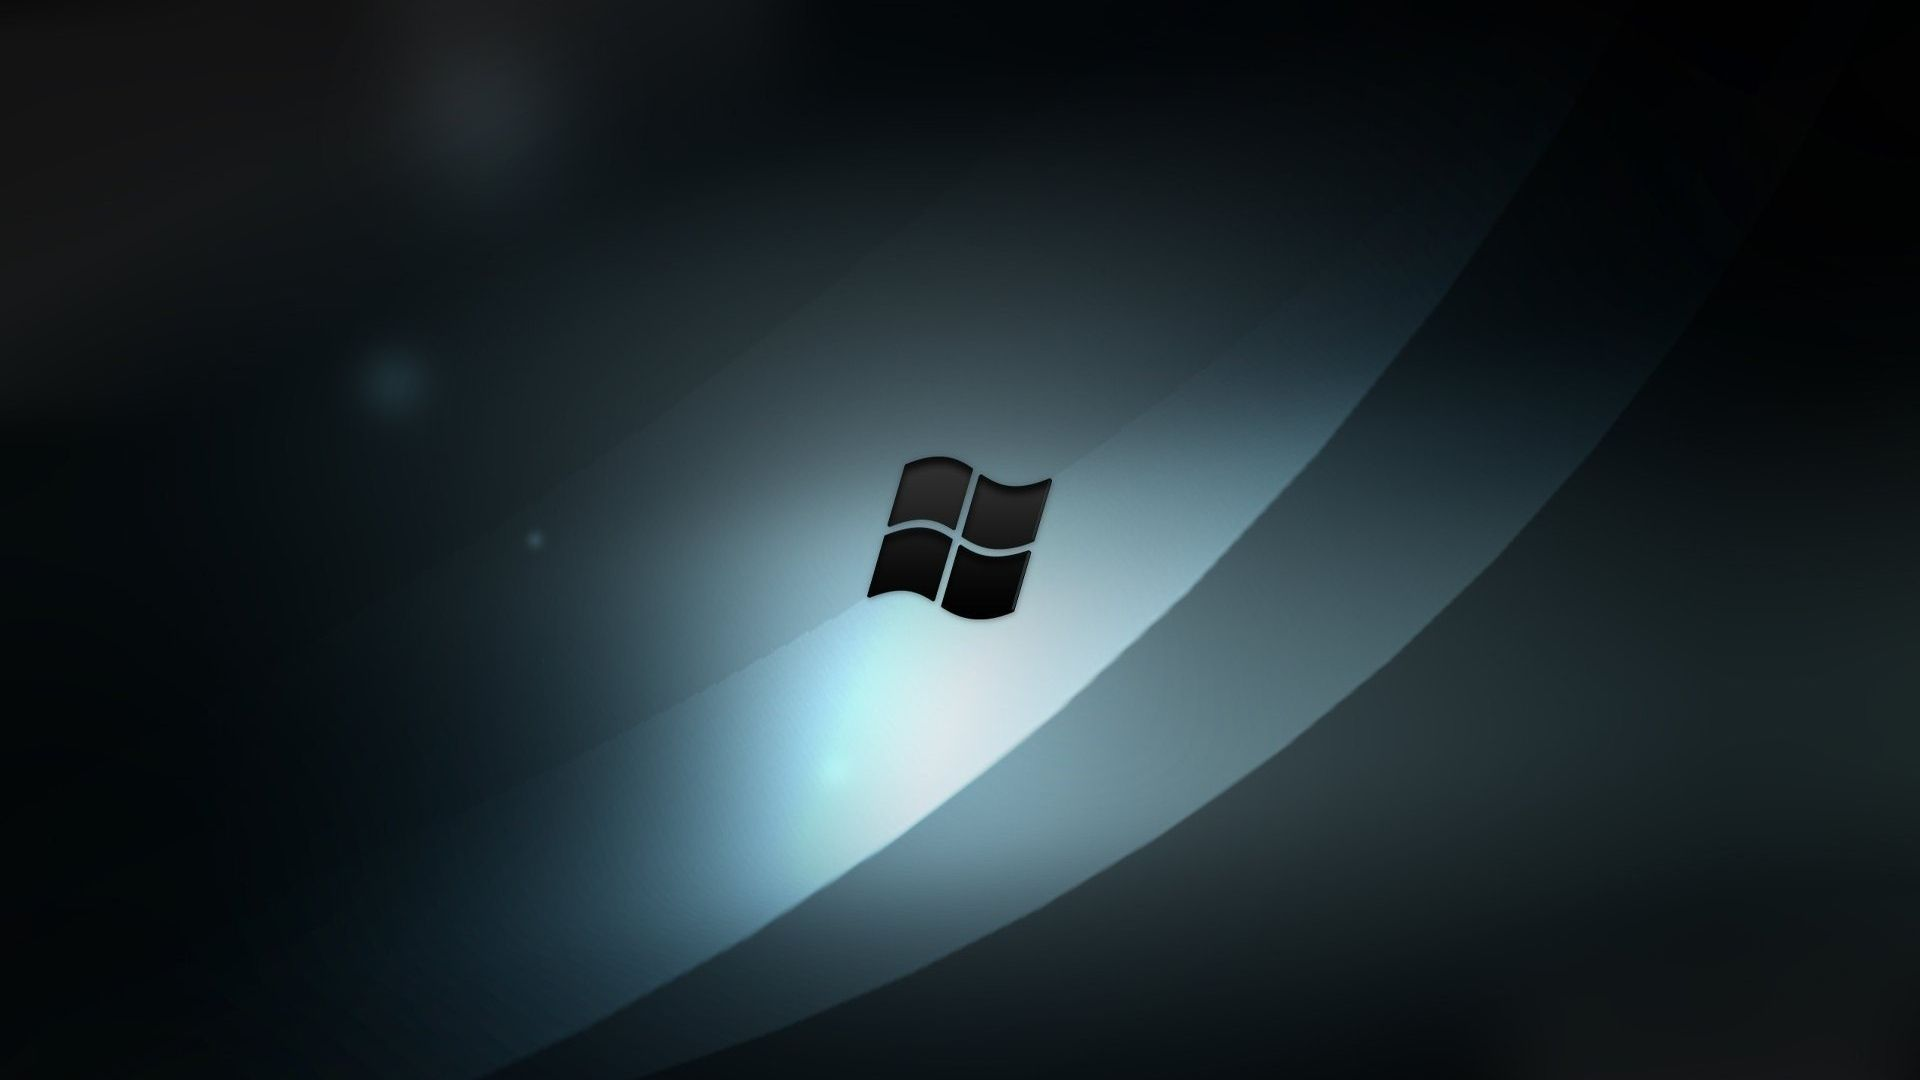 trololo blogg: windows hd wallpaper 1920×1080 hd windows 7